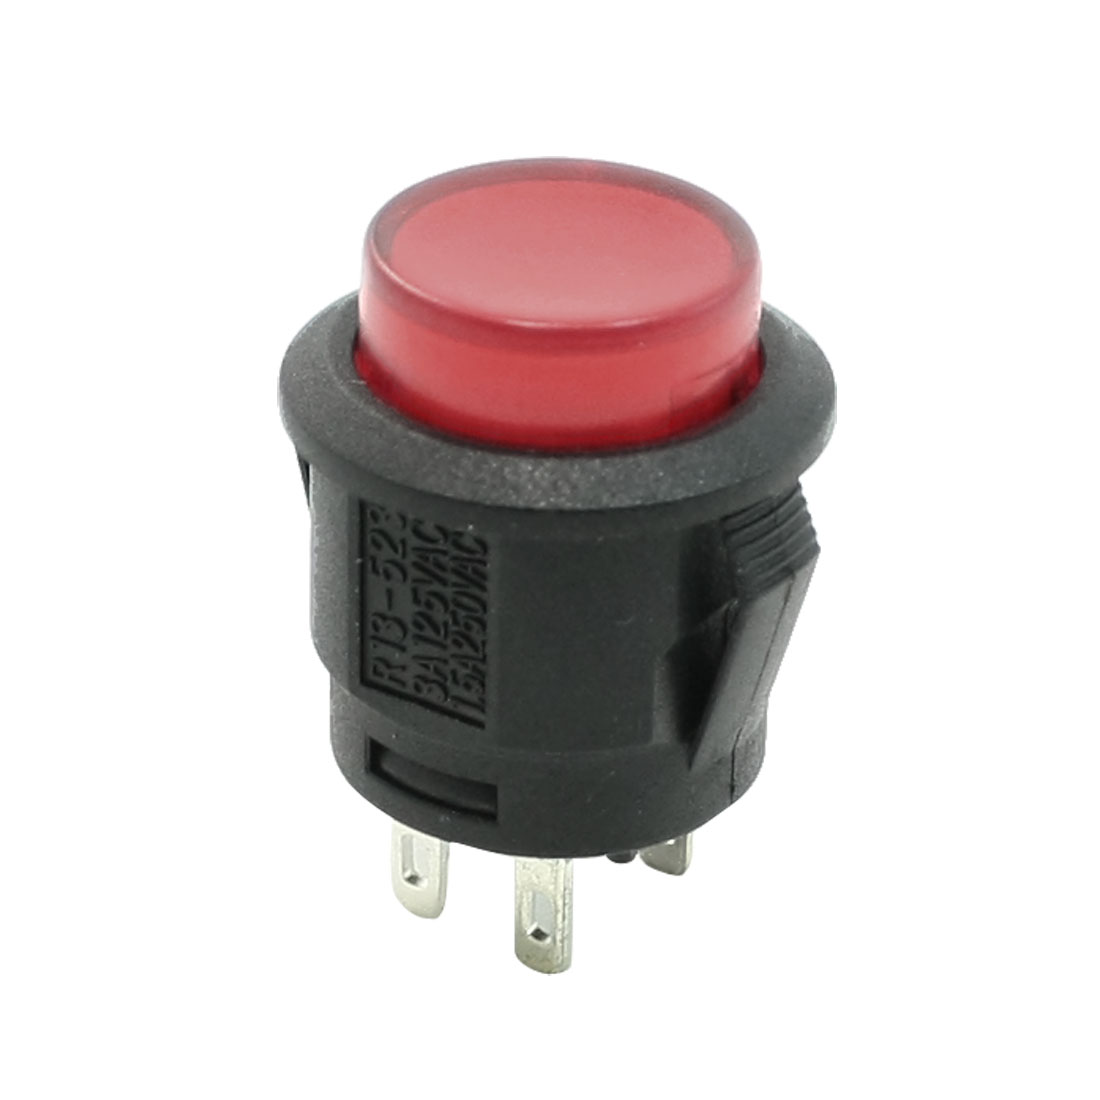 DC 12V 20A 4 Pin Terminals Red Pilot Lamp Self Locking Car Button Switch